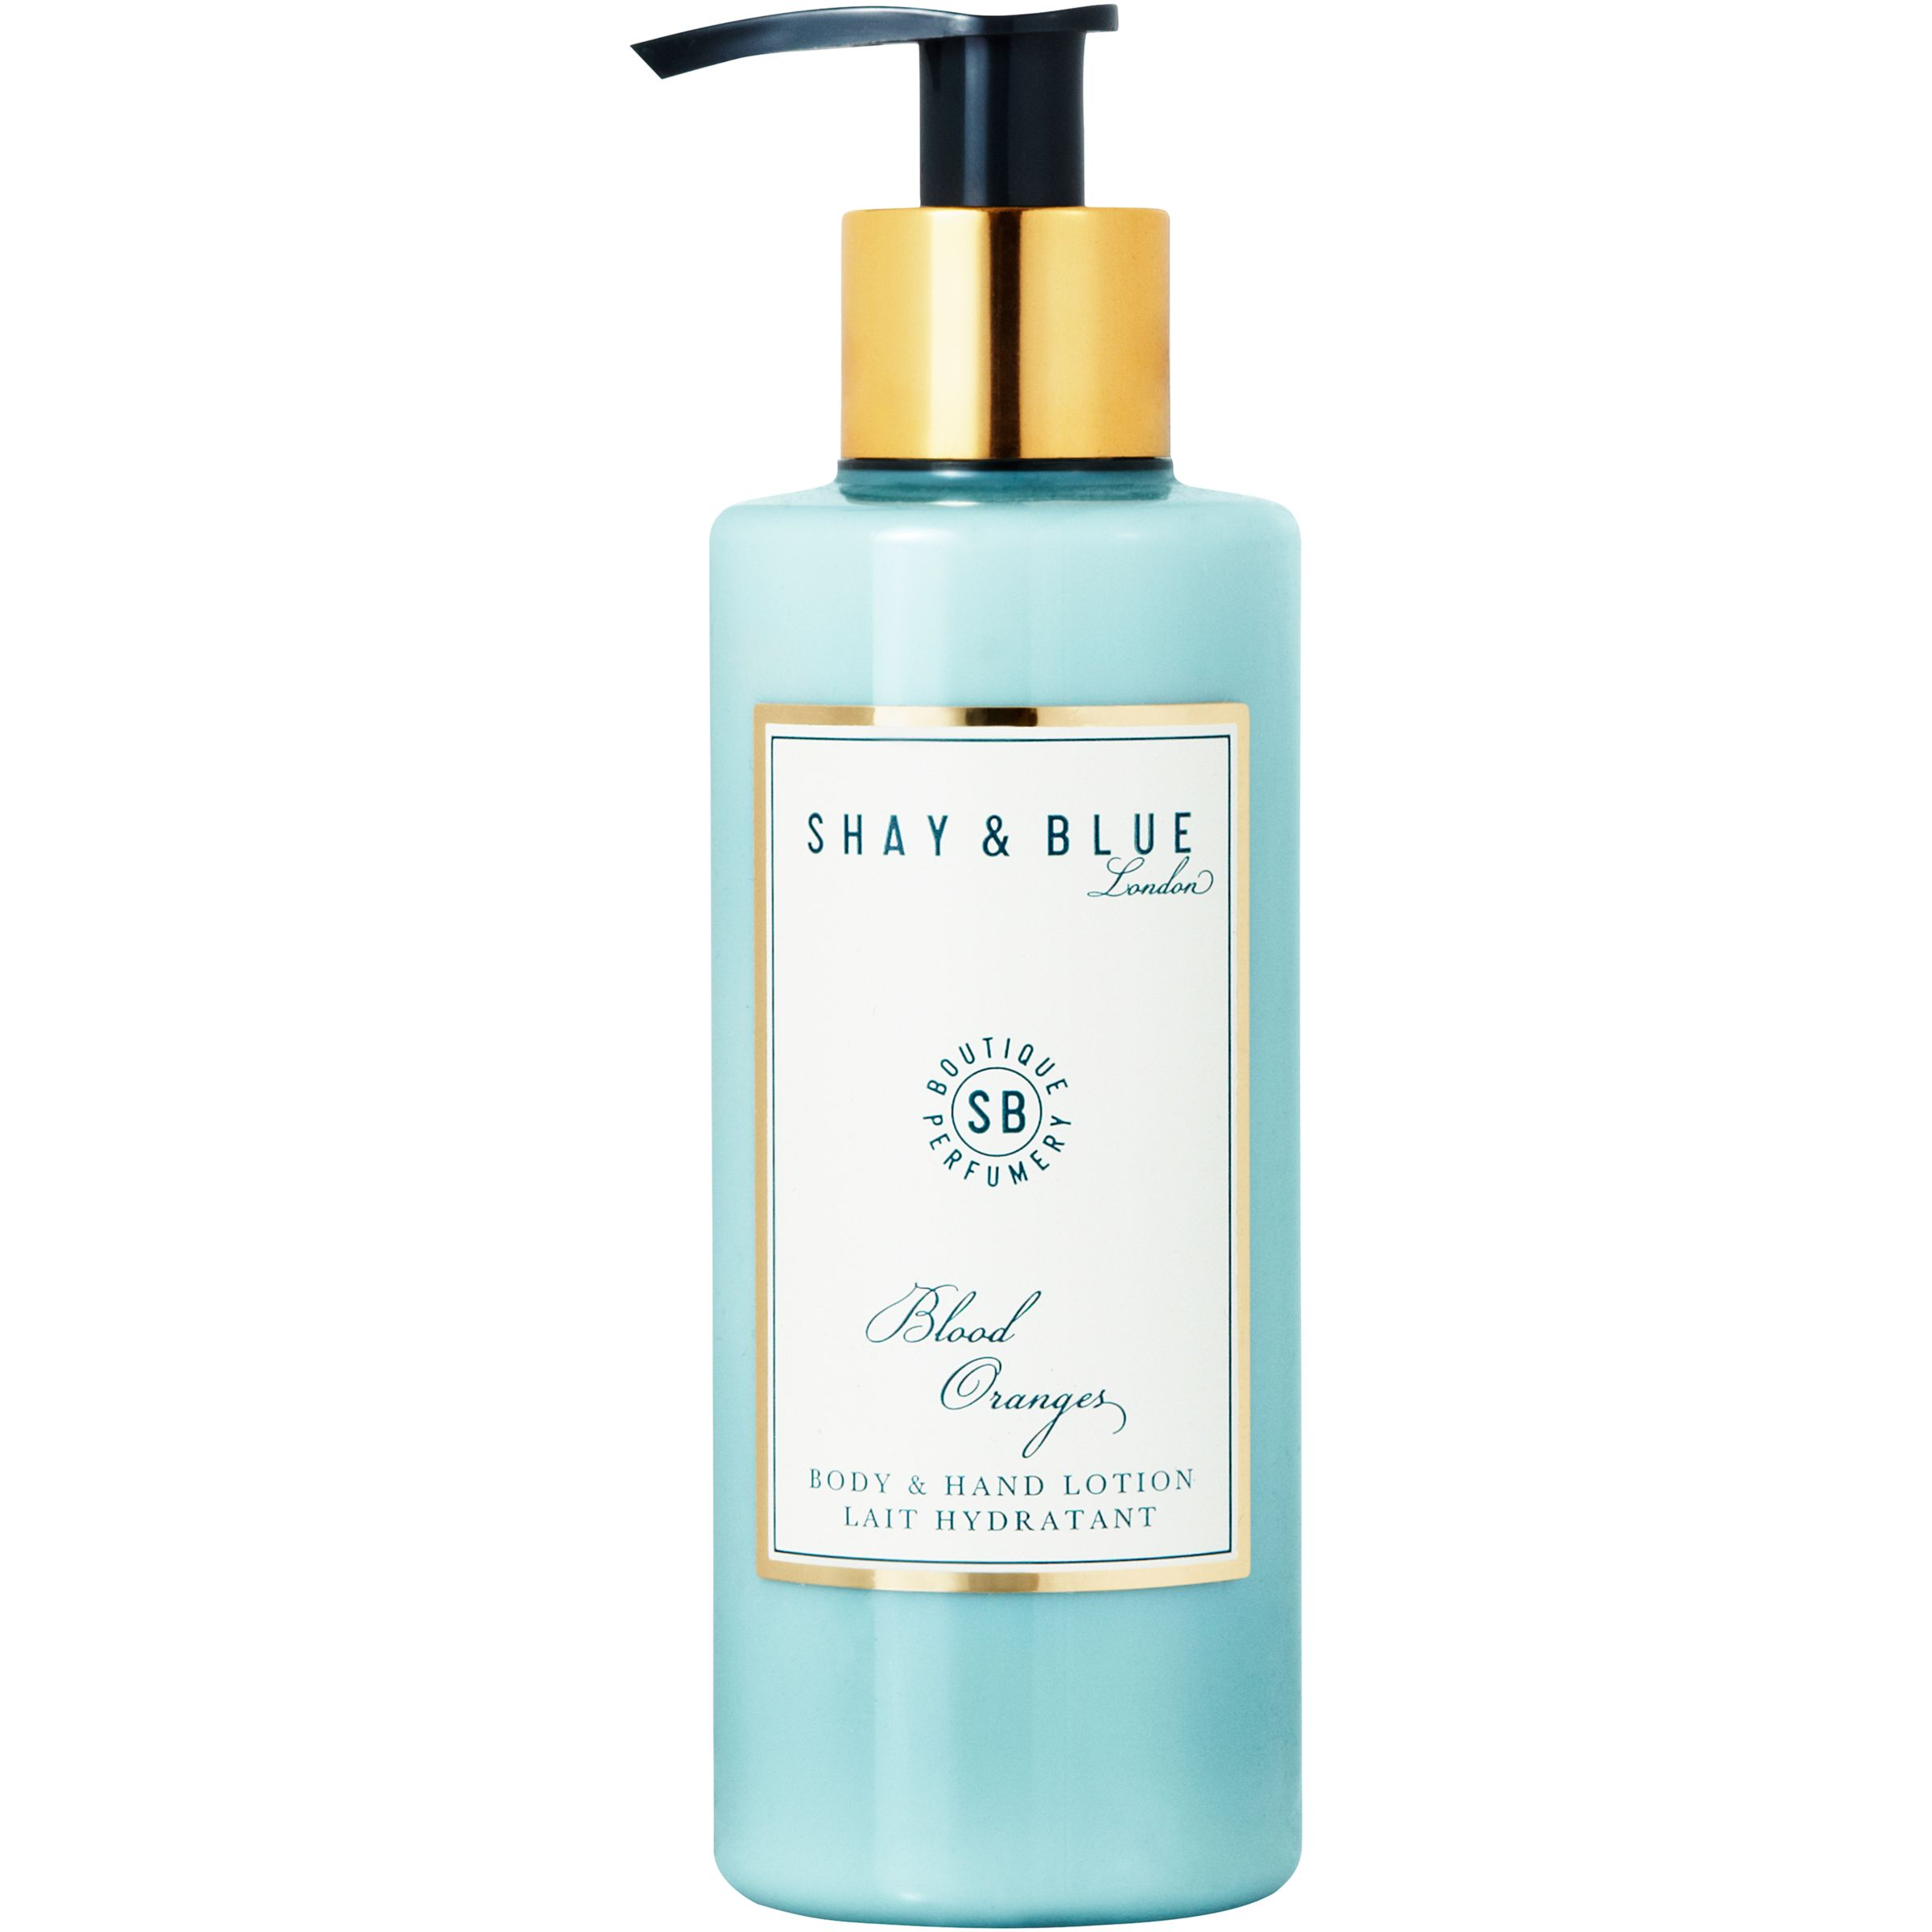 Shay & Blue Shay & Blue Blood Oranges Body & Hand Lotion, 200ml